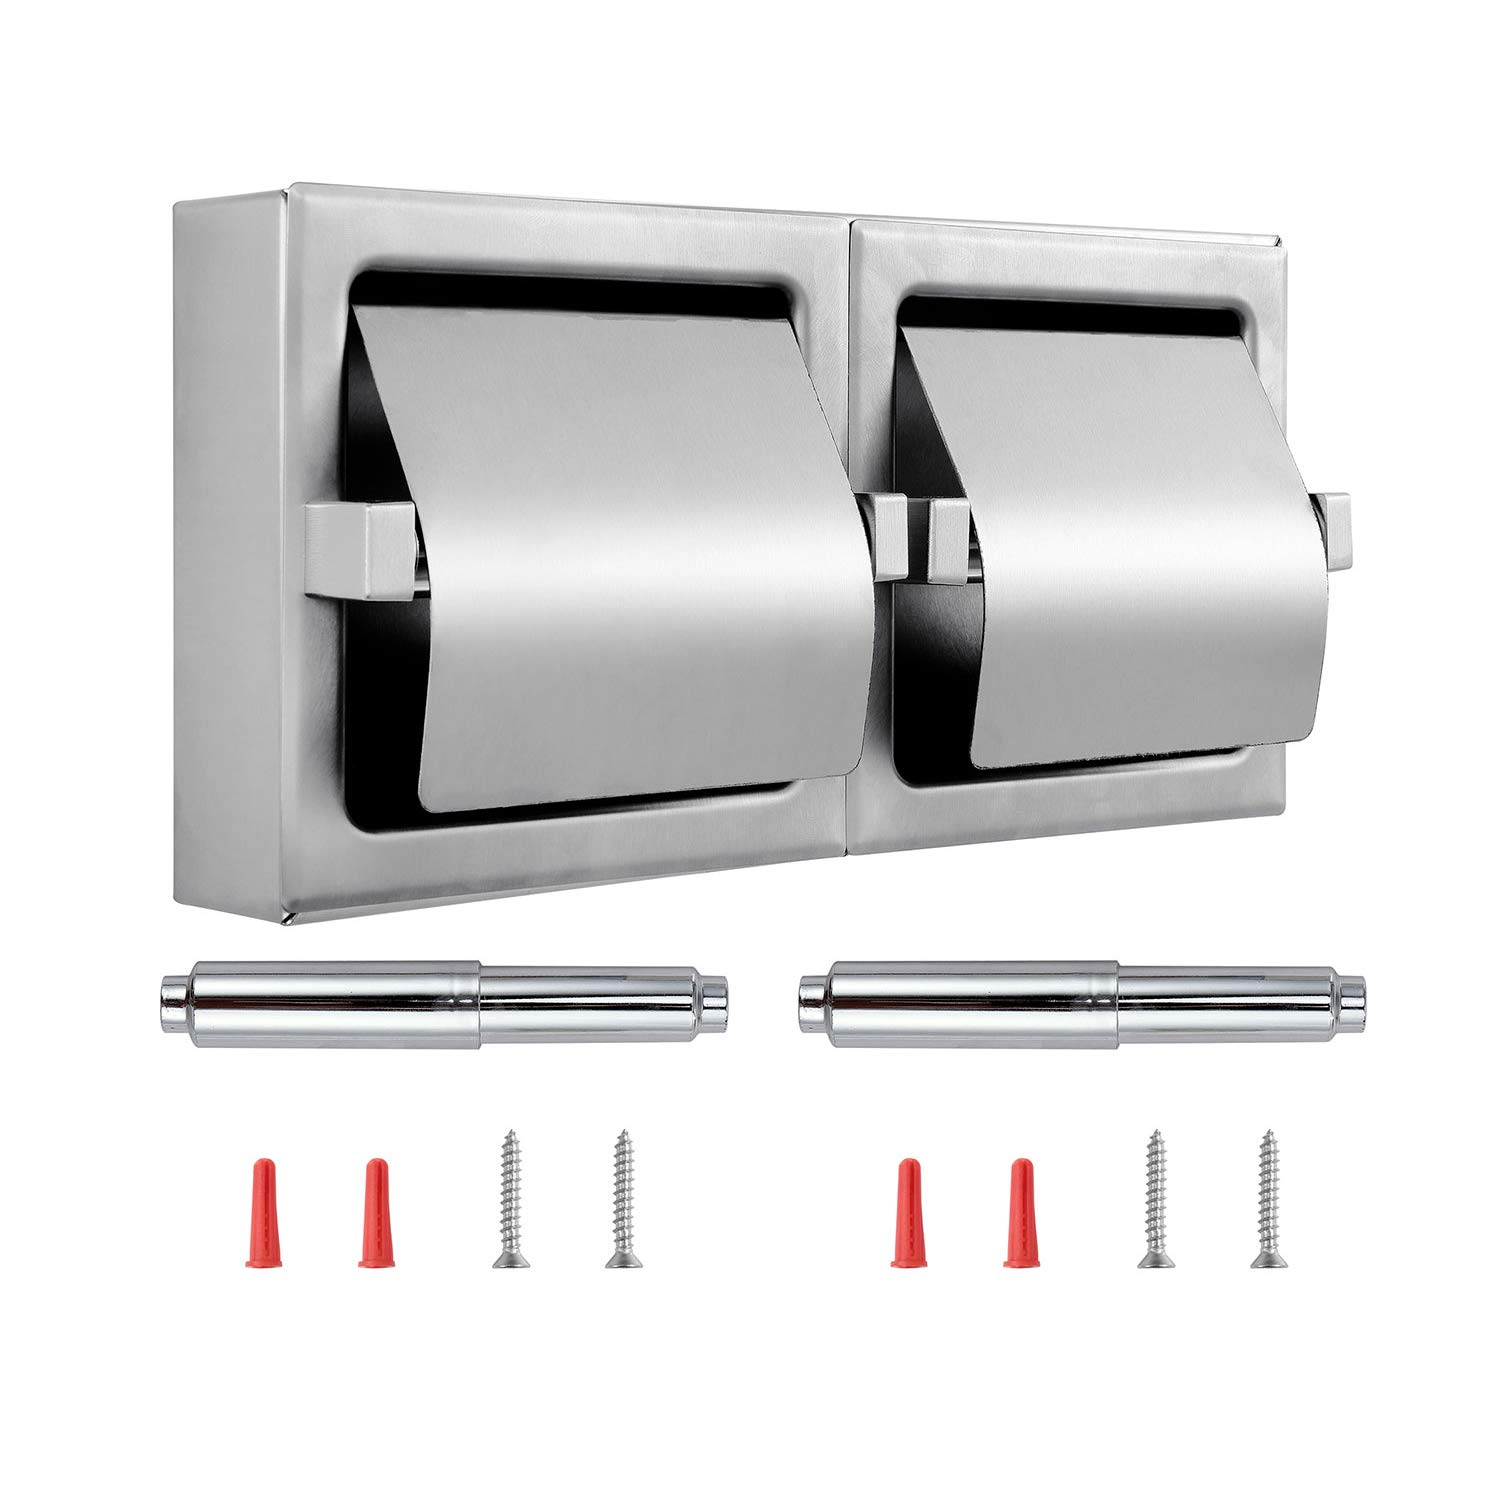 Dependable Direct Pack of 9 - Horizontal Two Roll Hooded Toilet Paper Holder - Stainless Steel - Satin Finish - Surface Mount